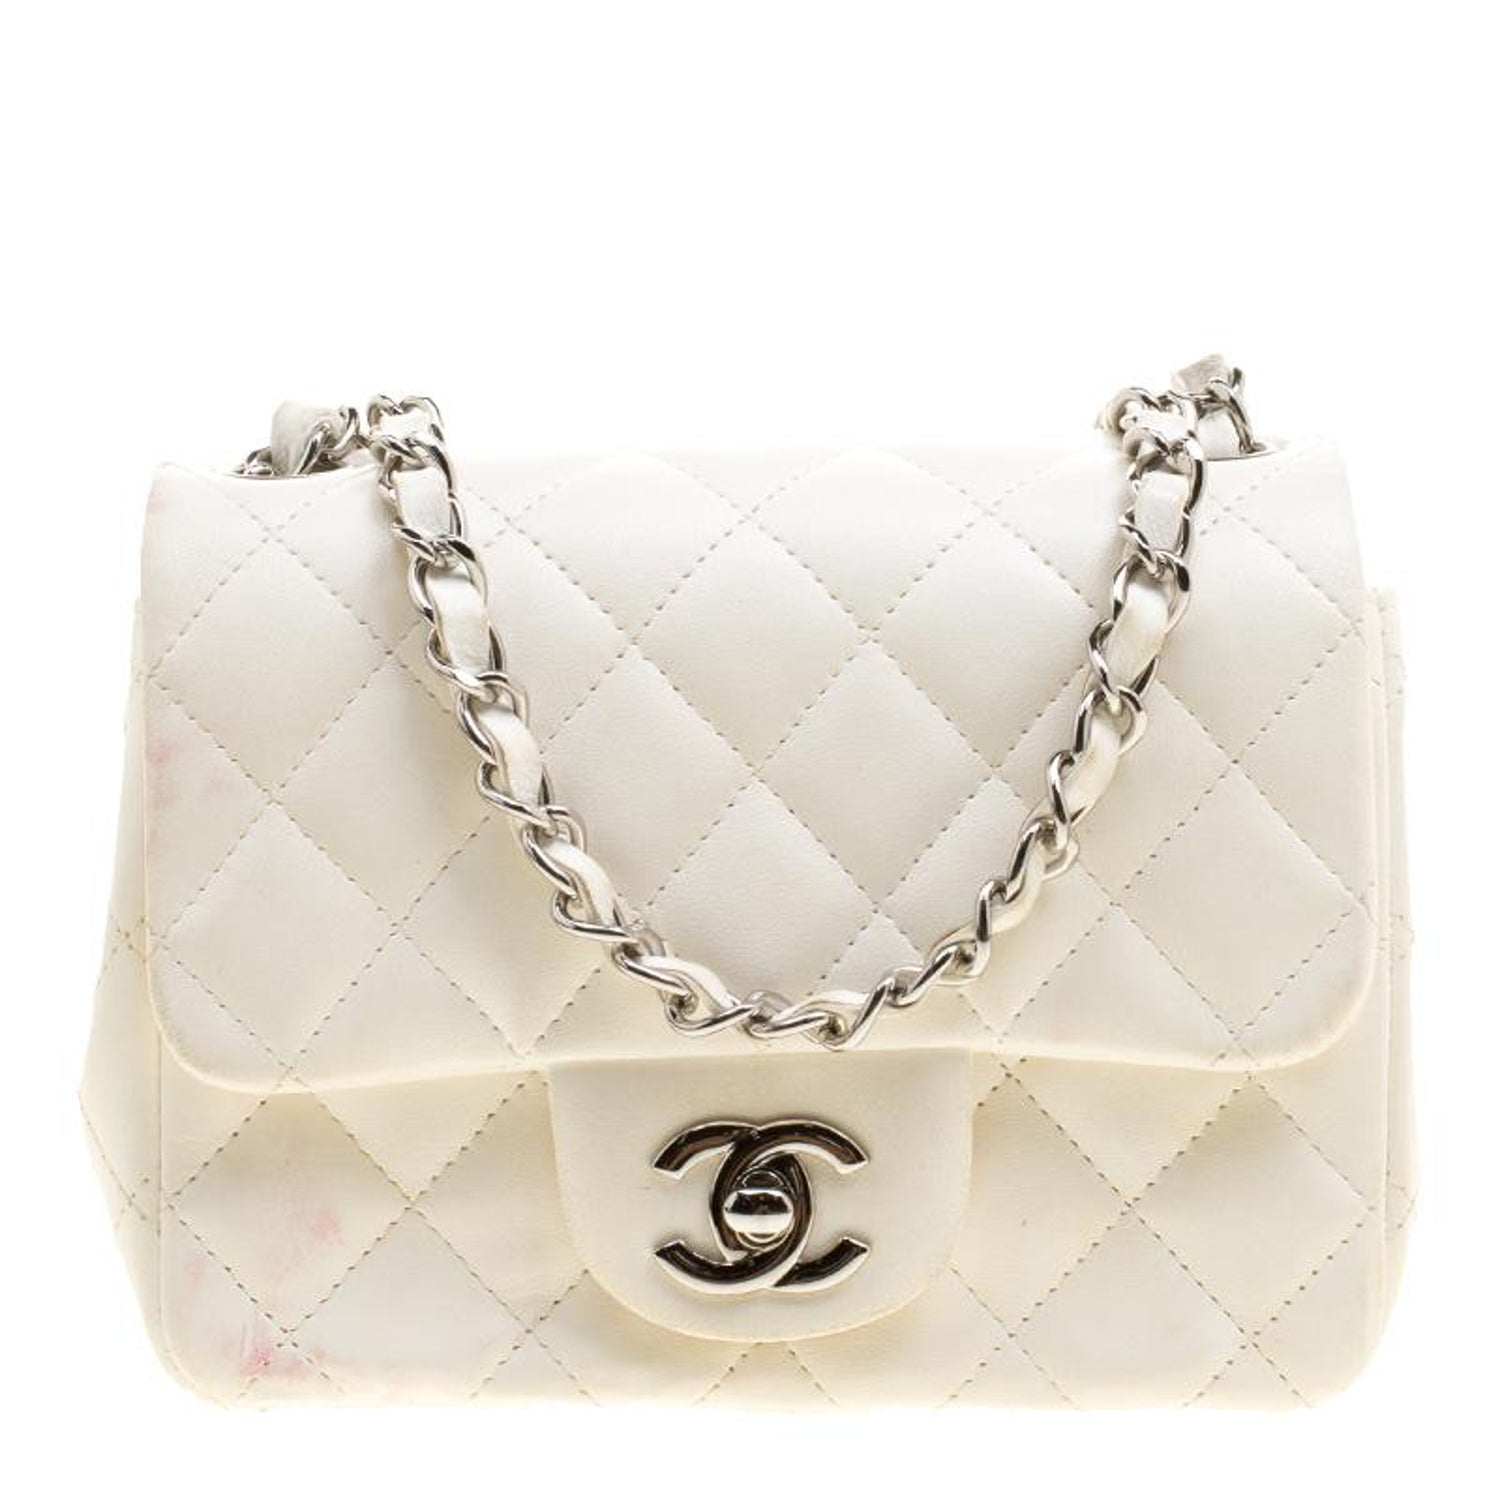 301bc0dcb577 Chanel White Quilted Leather Mini Classic Single Flap Bag at 1stdibs